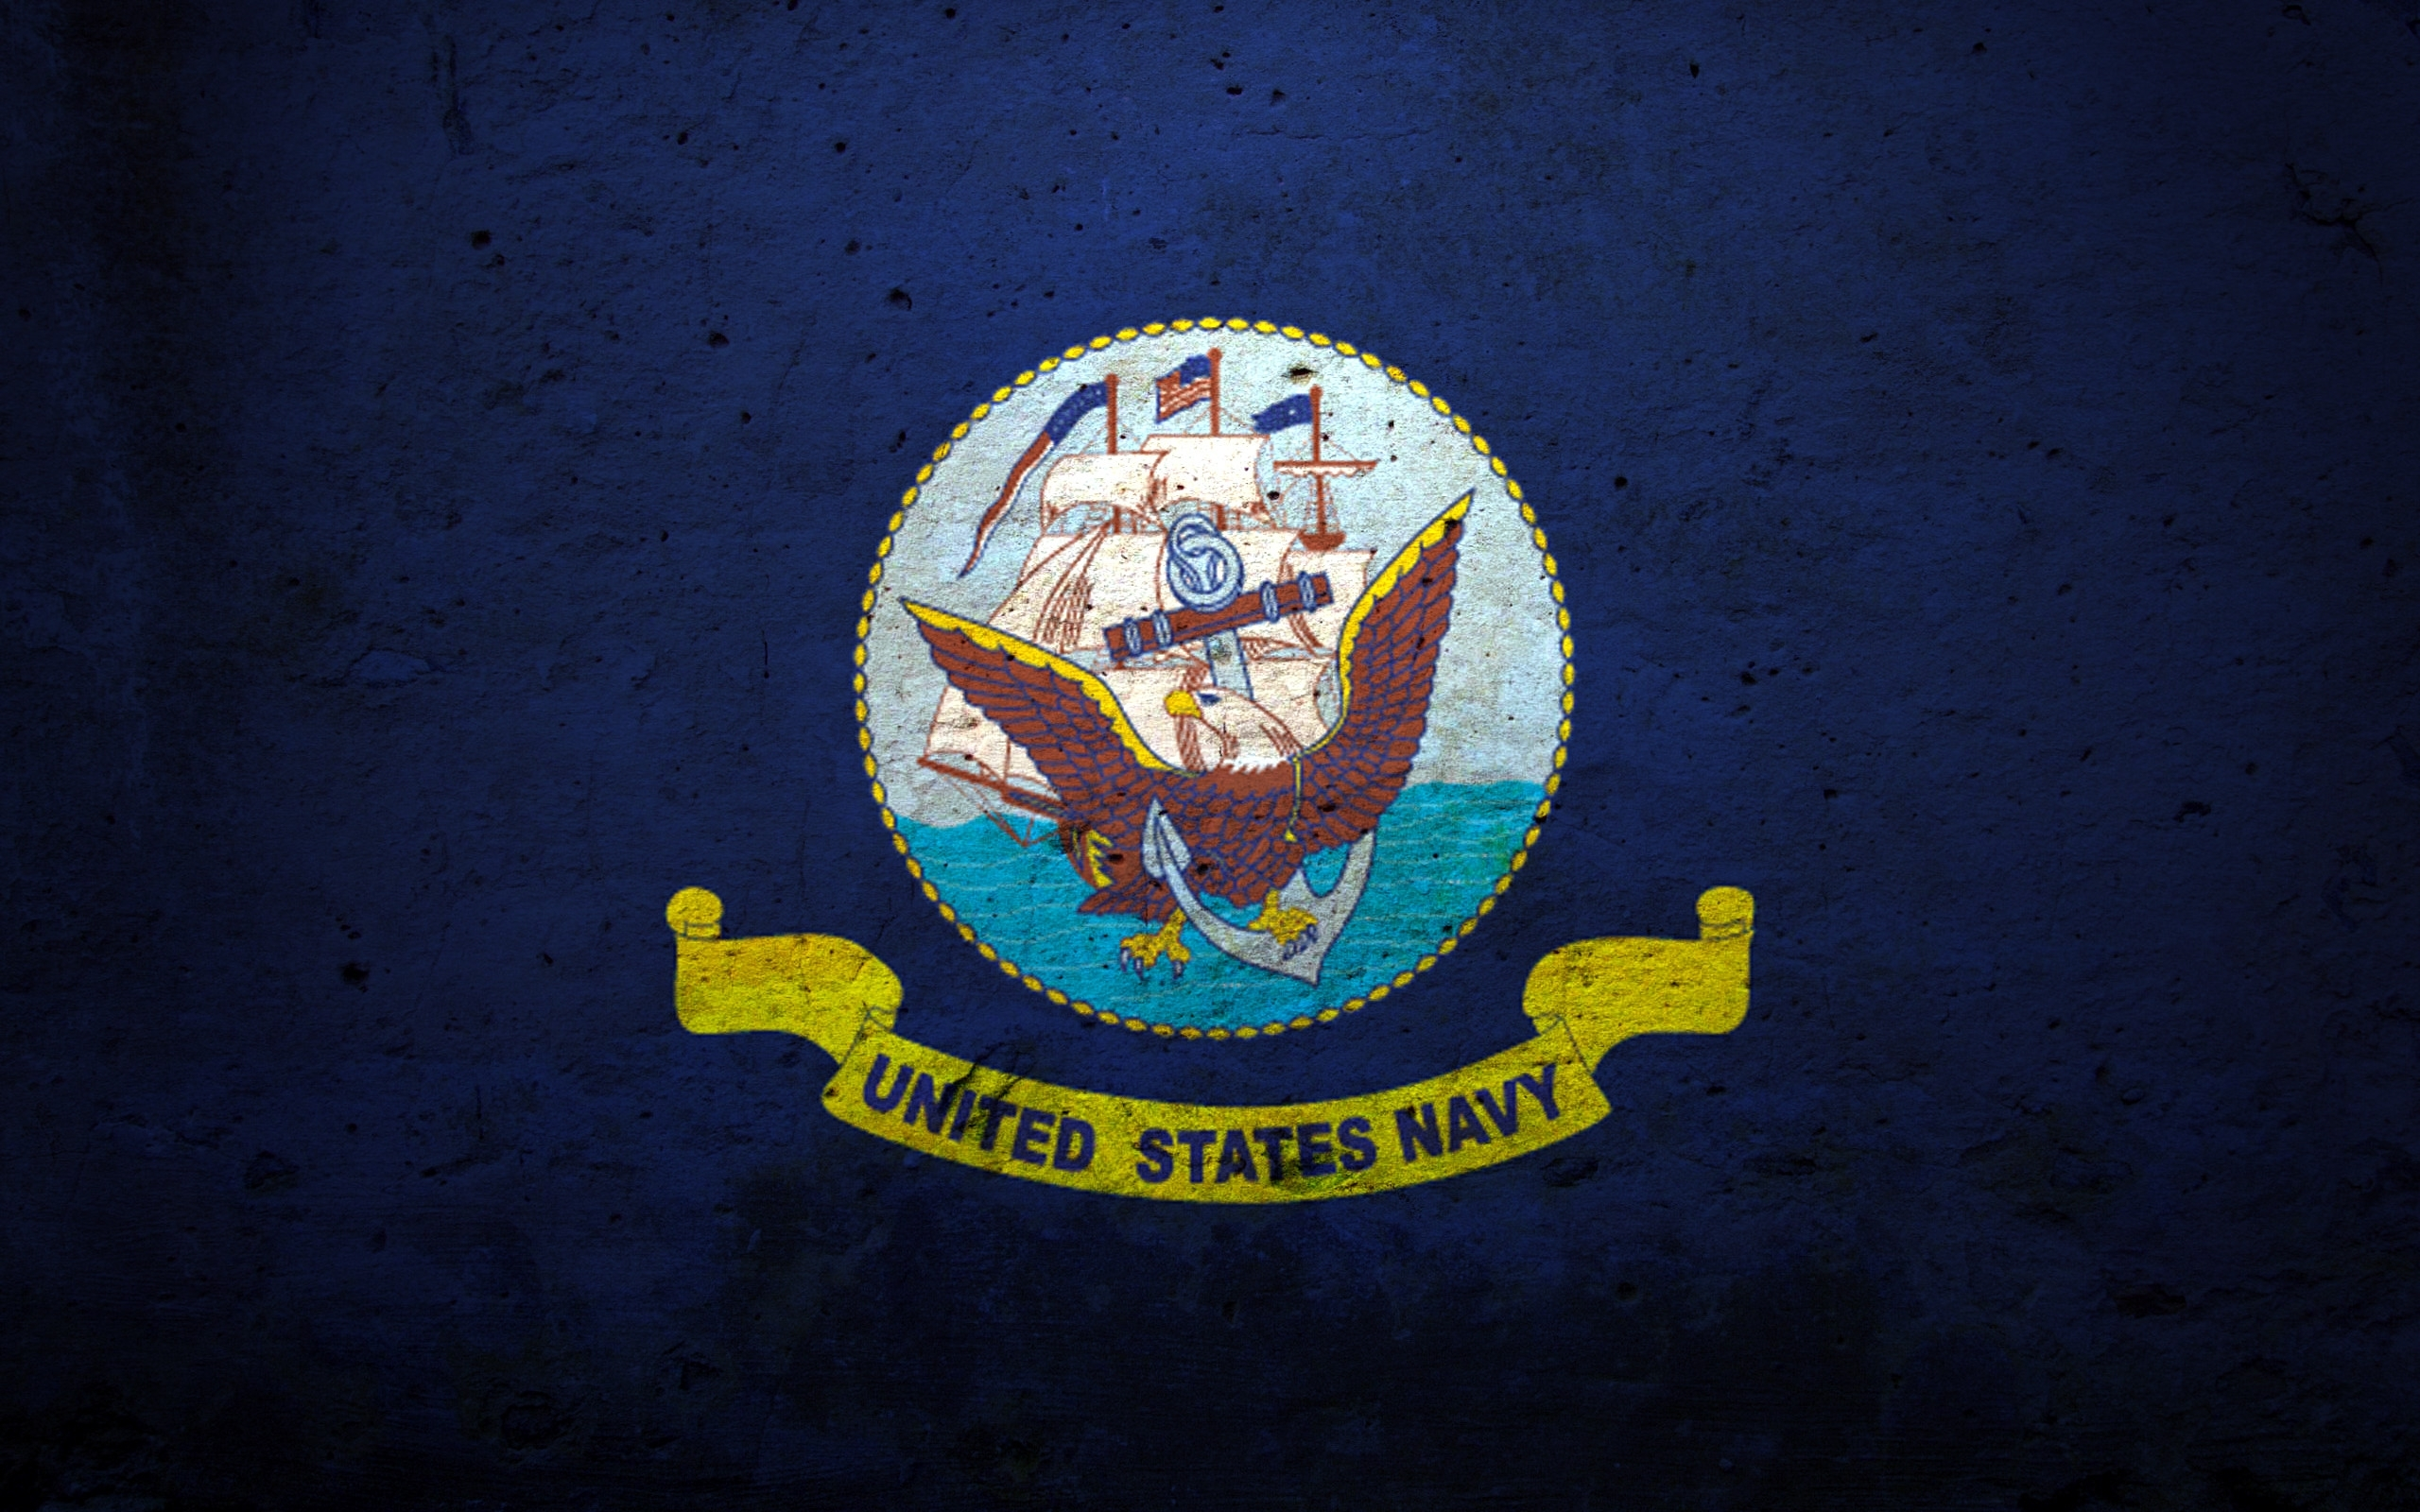 us navy images logo wallpaper (54+ images)